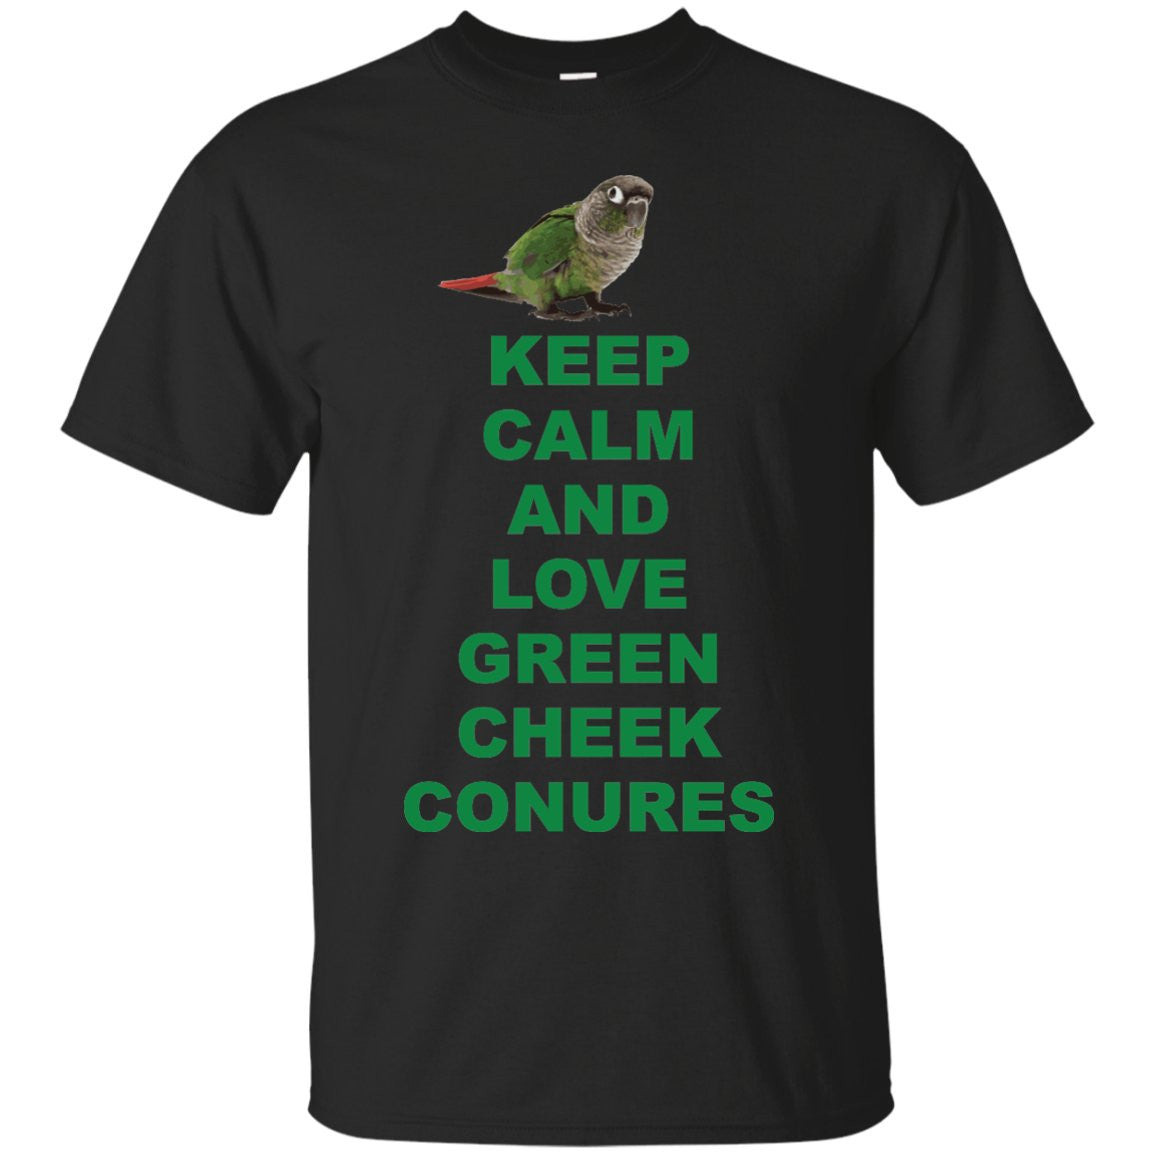 Keep Calm and Love Green Cheek Conures - Funny Shirt